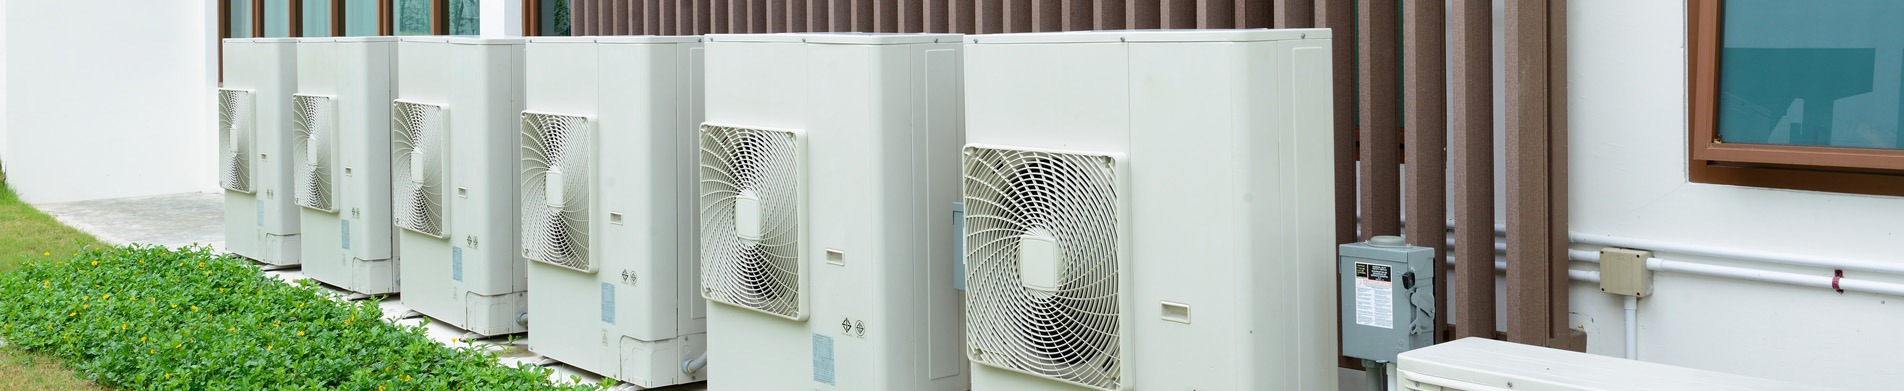 /uploaded/slide/hvac-banner-3.jpg